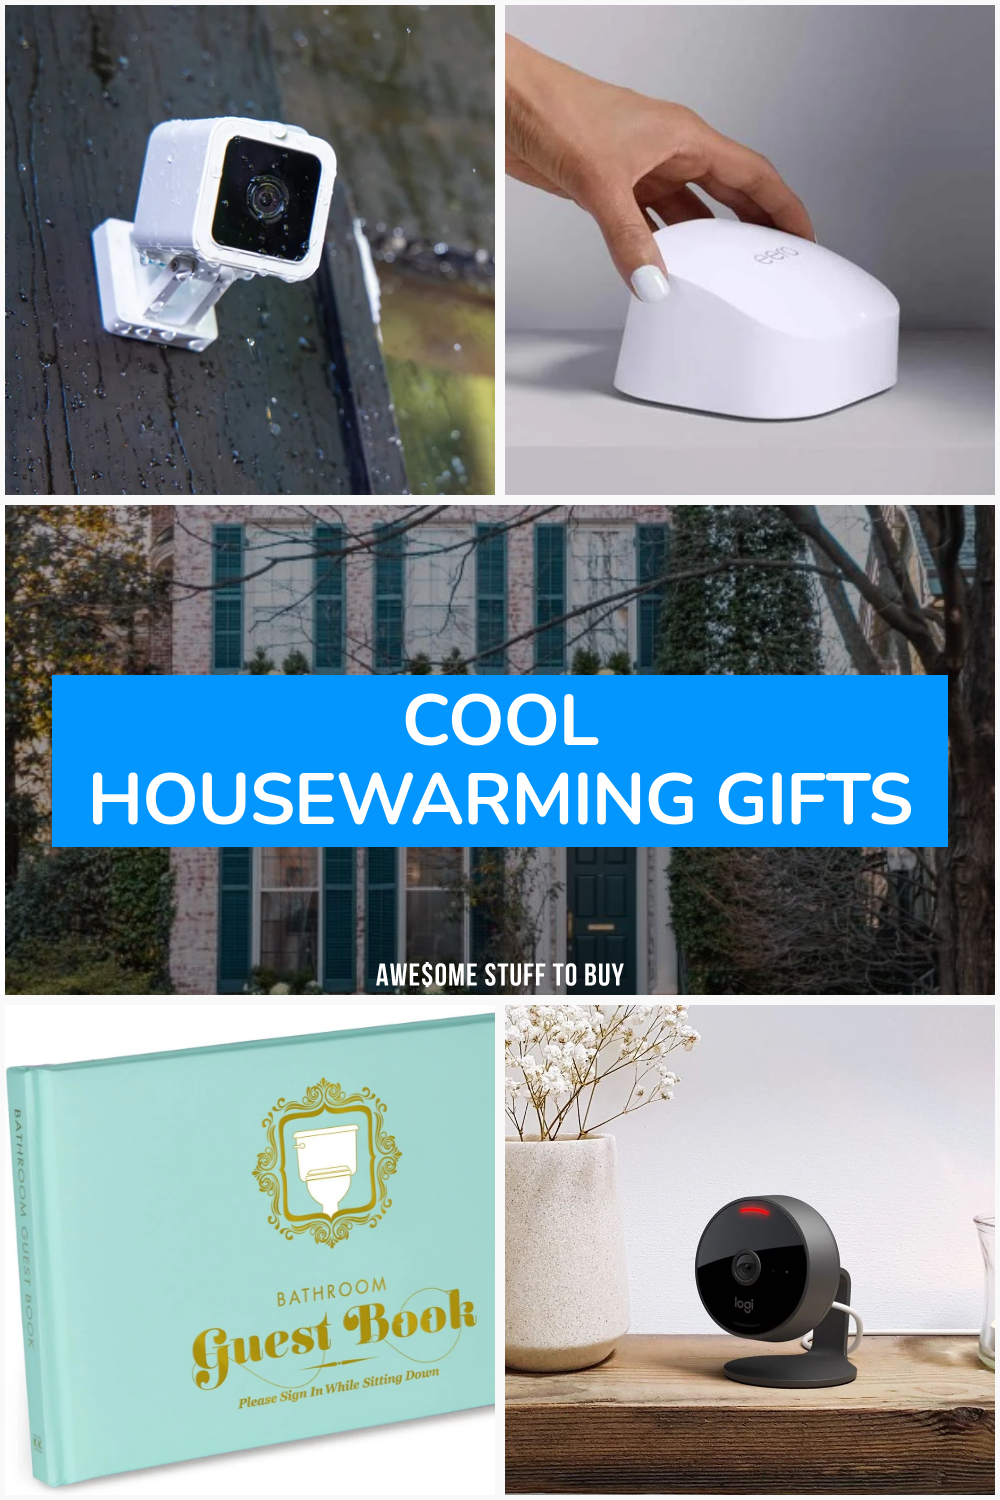 Cool Housewarming Gifts // Awesome Stuff to Buy